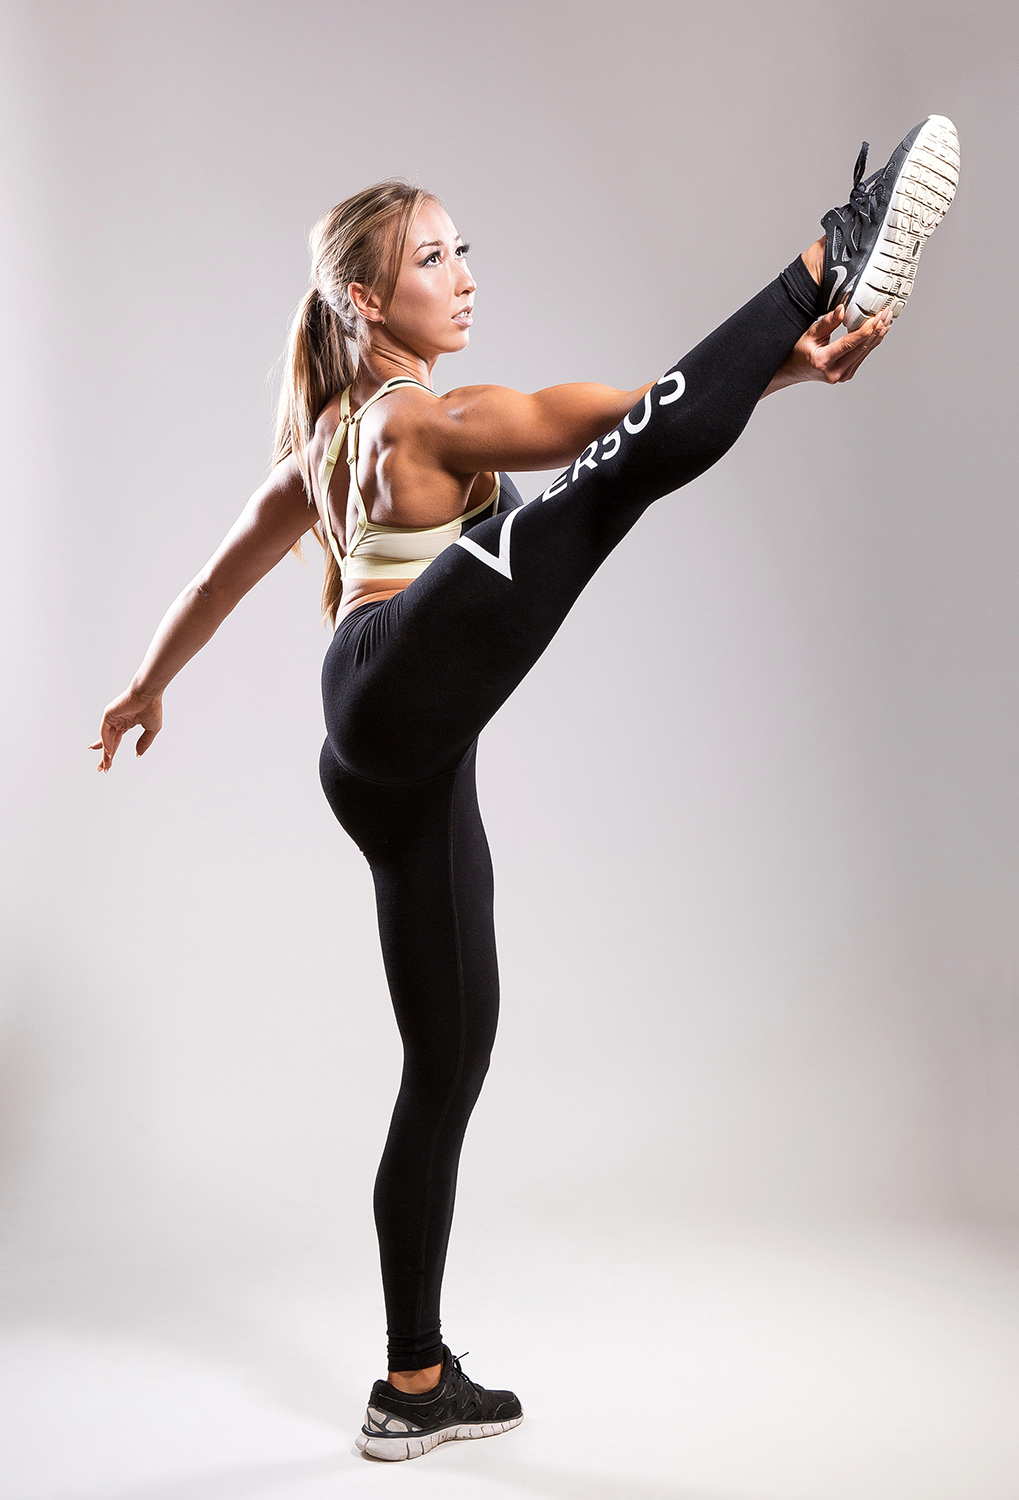 Gina Hunt fitness shoot.